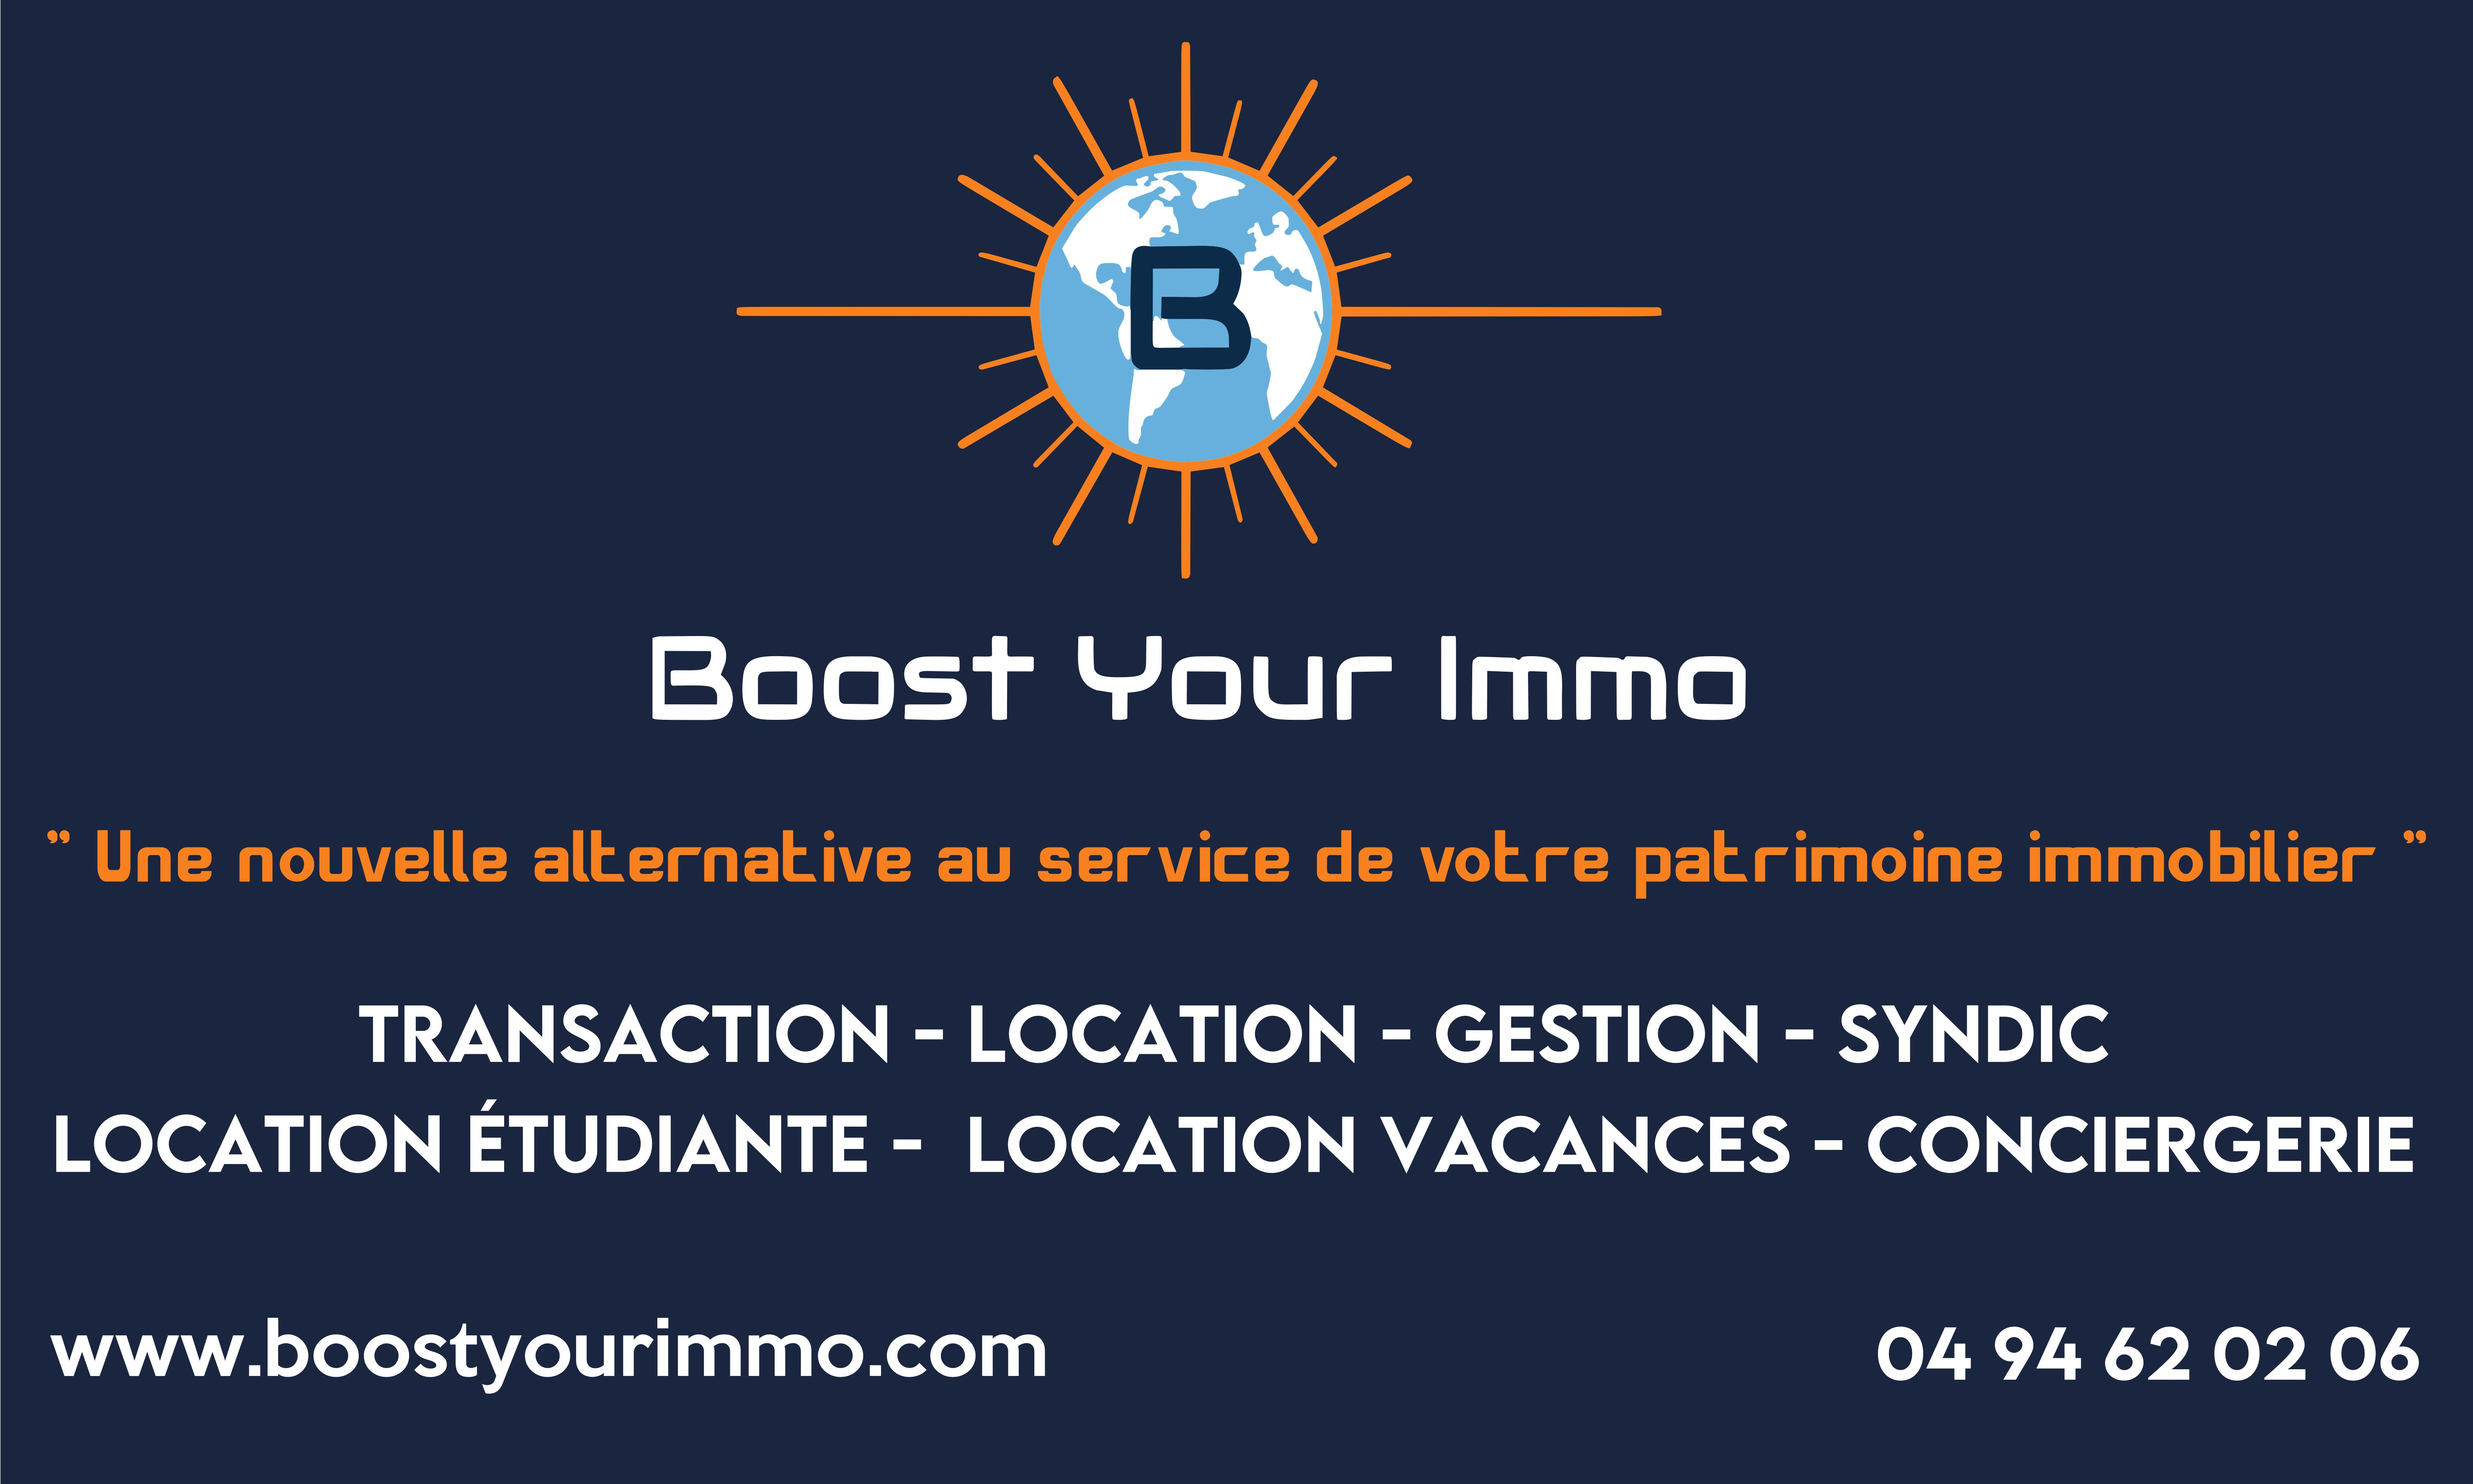 Boost Immo